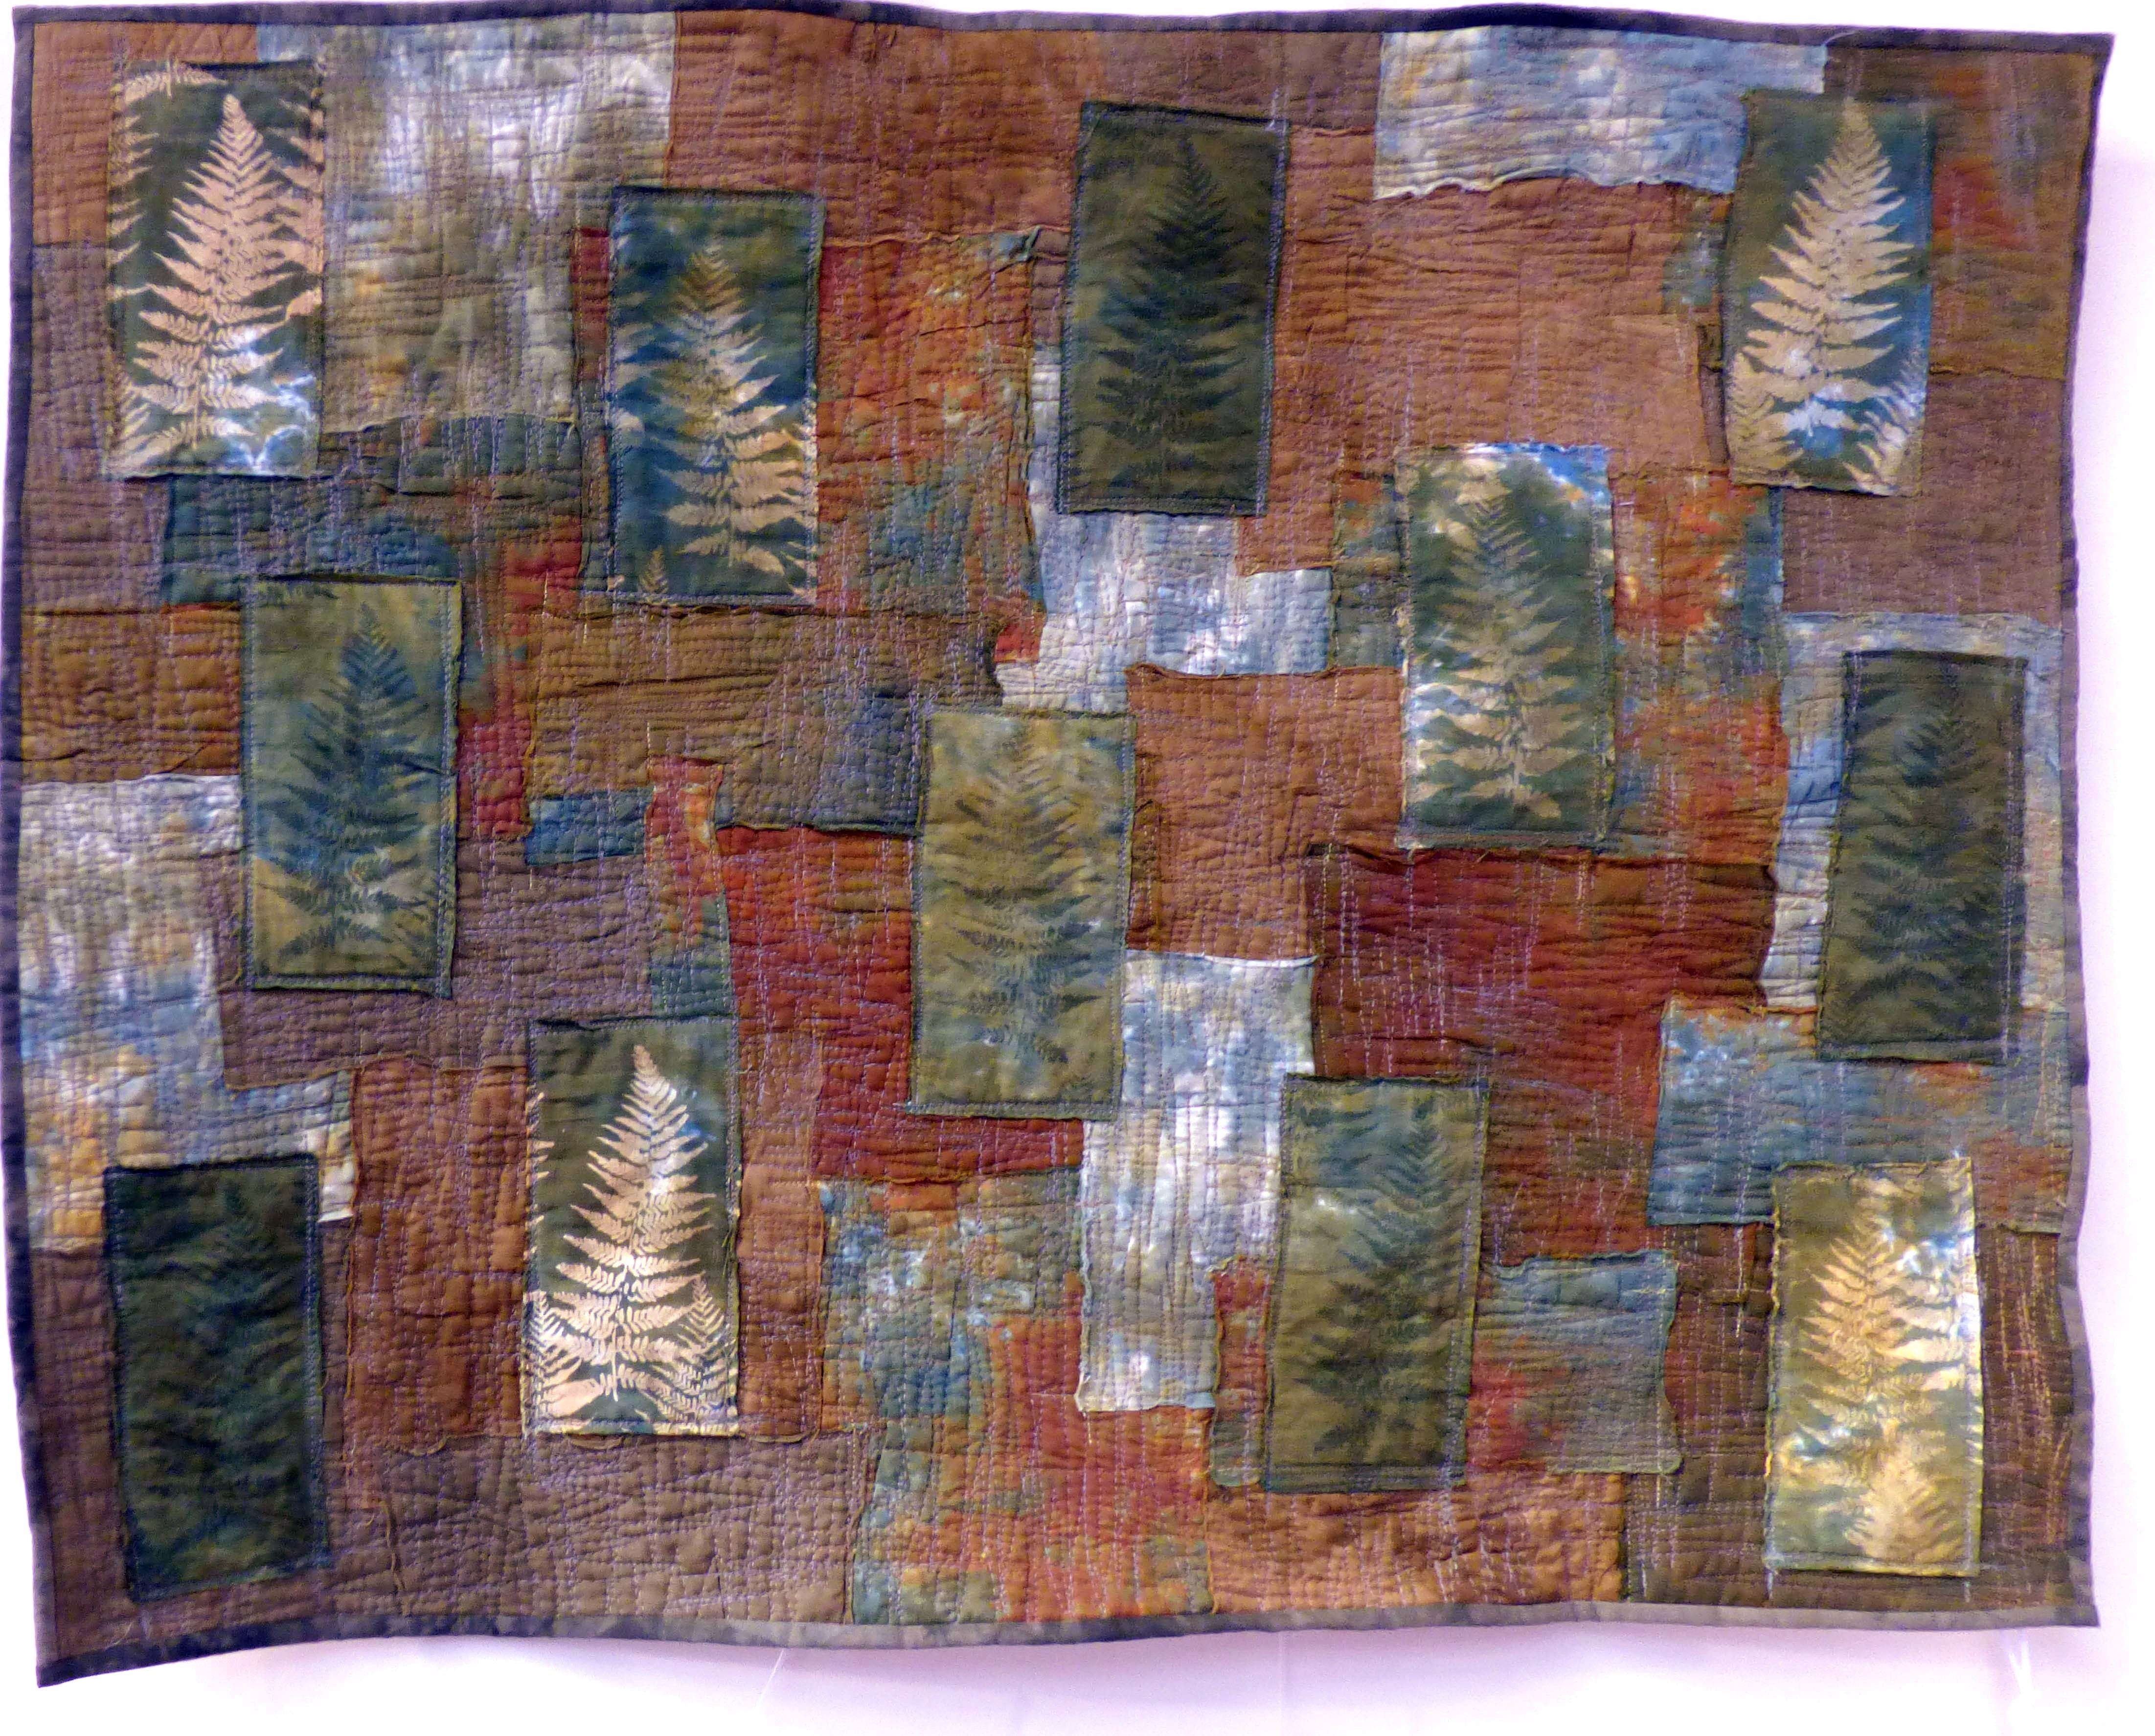 CAN'T SEE THE WOOD FOR THE TREES by Tracey Ramsey, Natural Progression Textile Group, Jan 2020